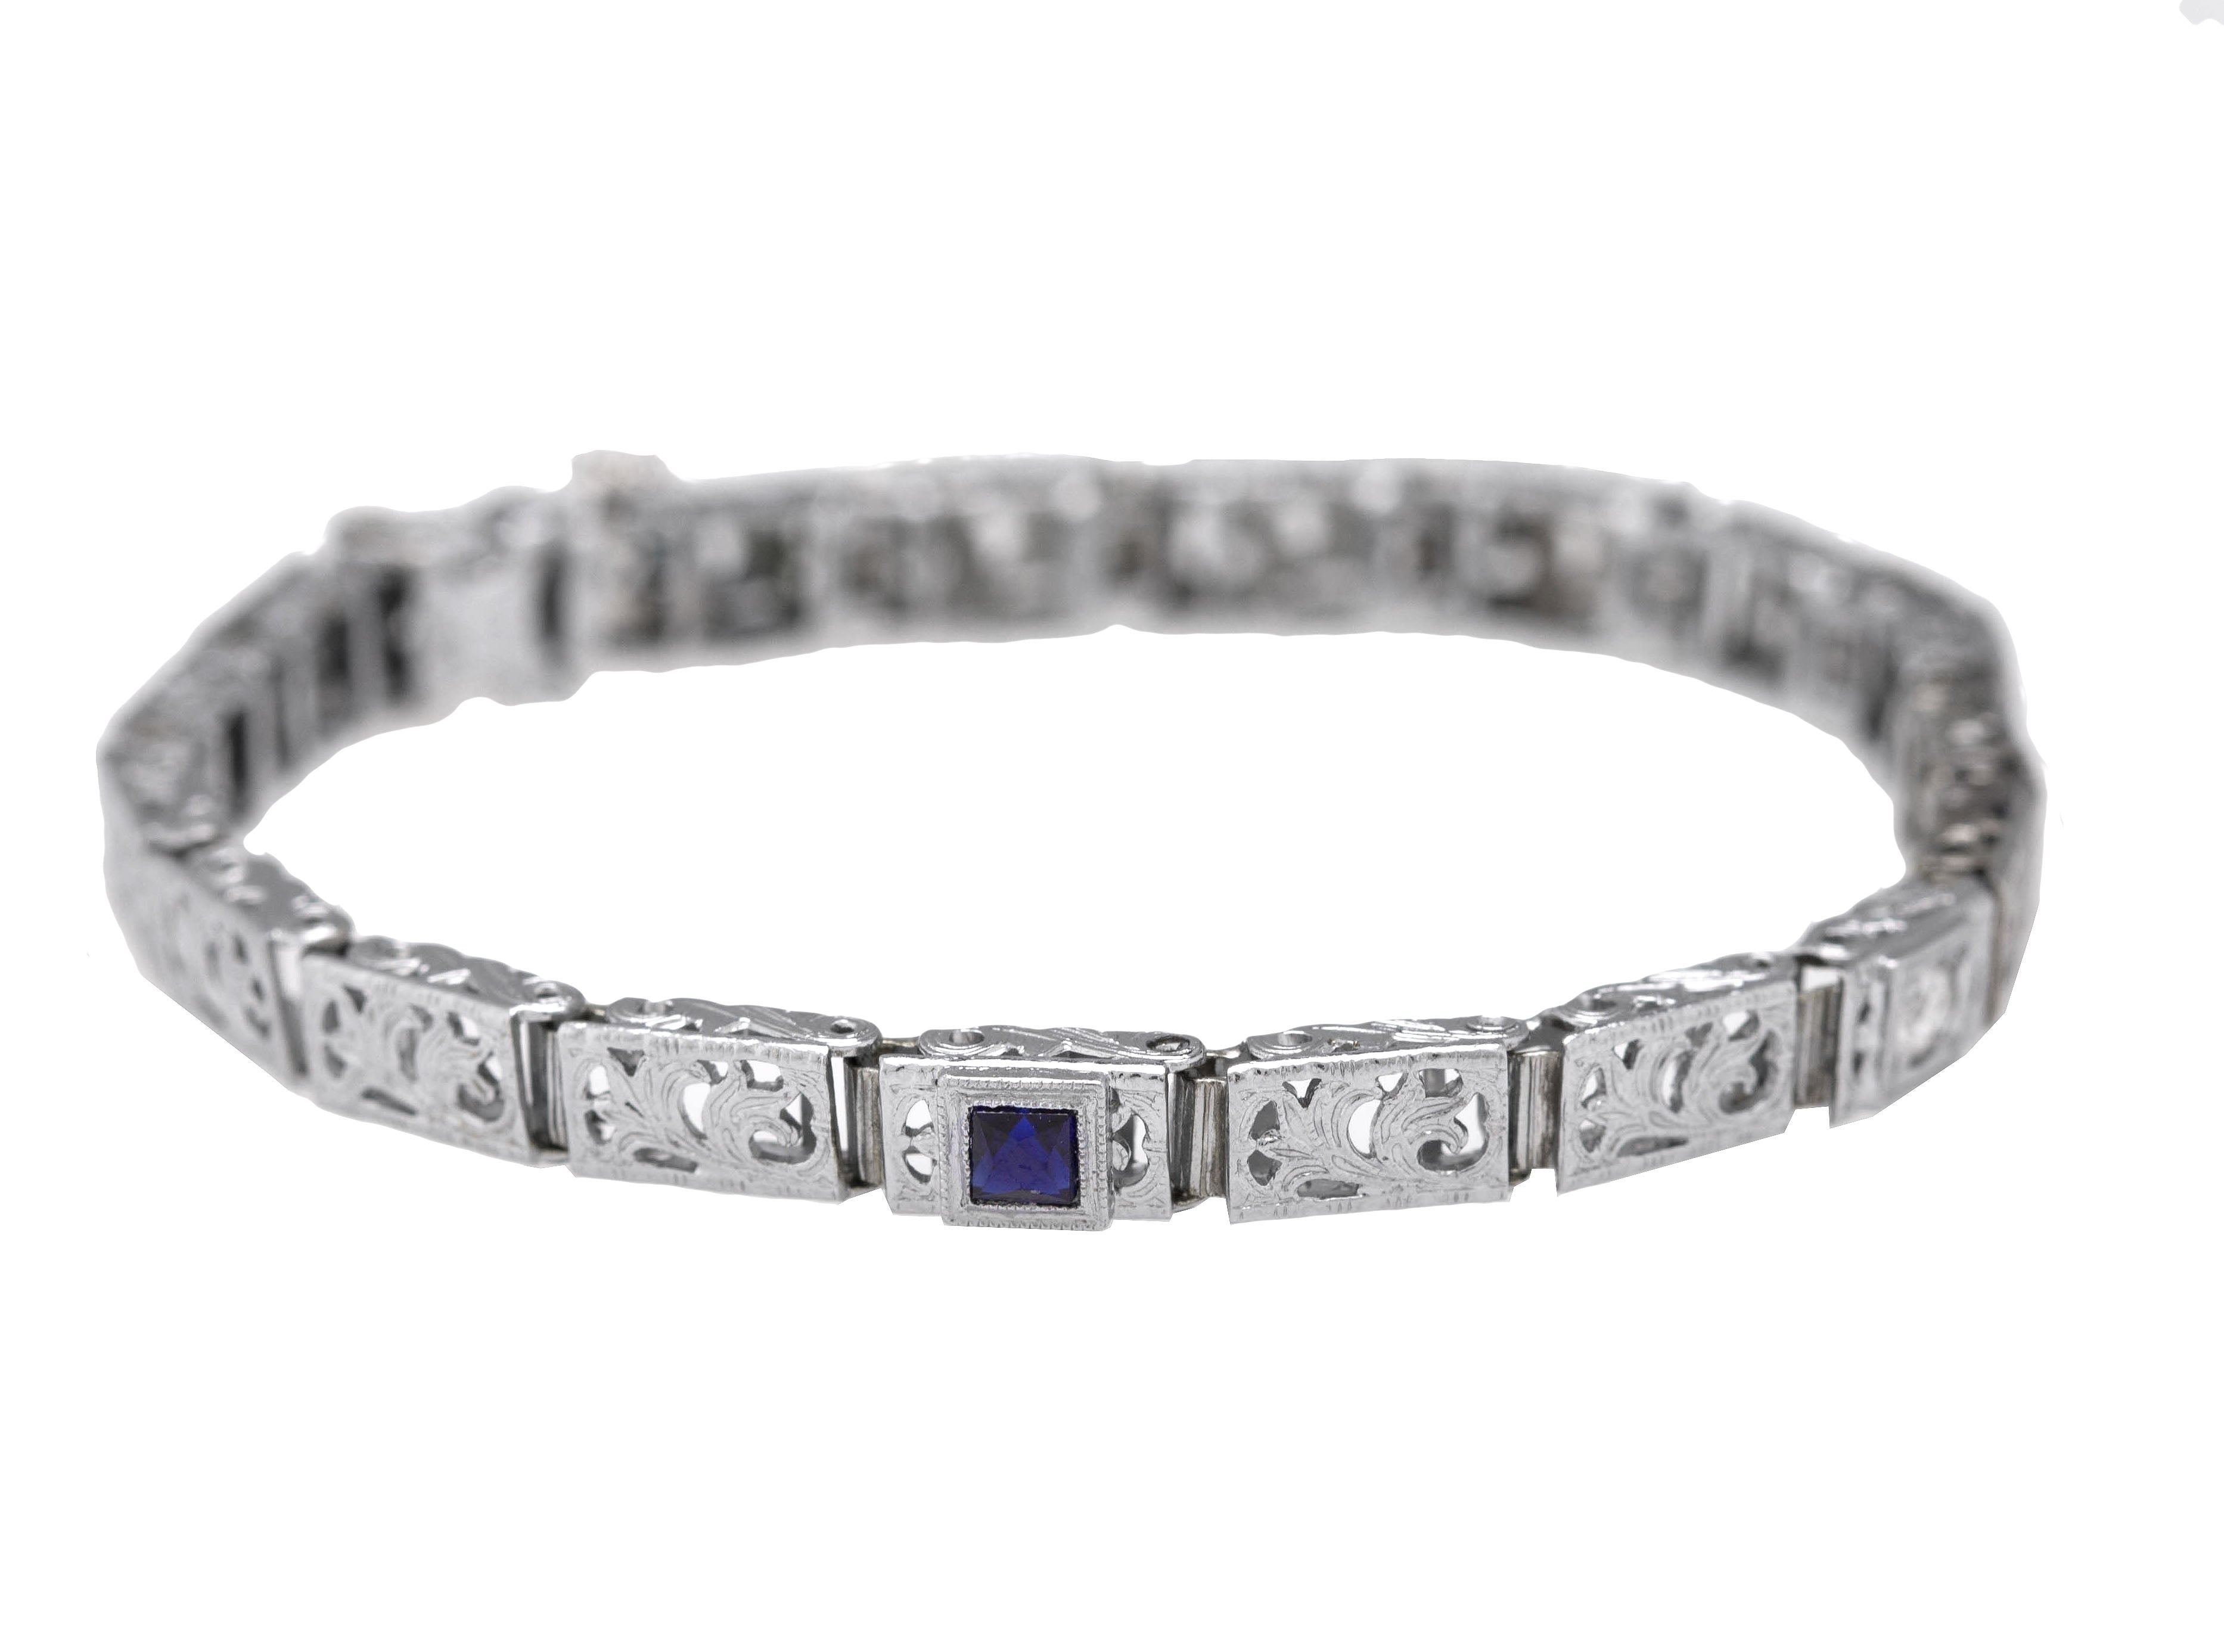 1930s Antique Art Deco 14K White Gold 0.29ctw Sapphire Diamond Filigree Bracelet